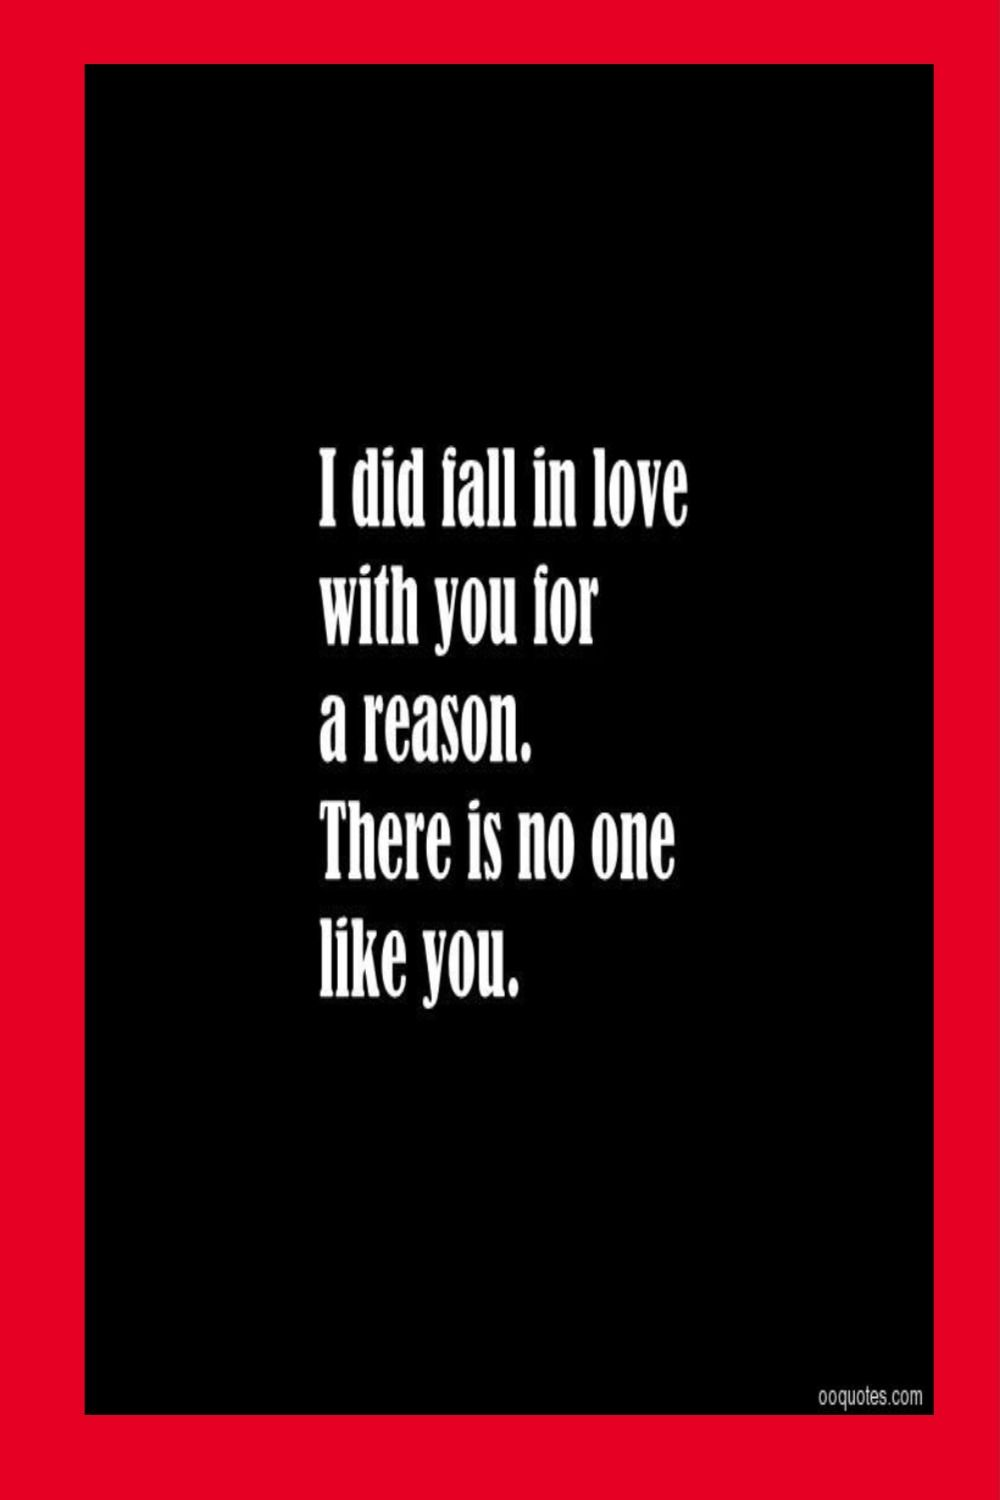 55 Funny Love Memes To Share With That Cute Wholesome Person Love Memes For Him Im Sorry Quotes Messed Up Quotes